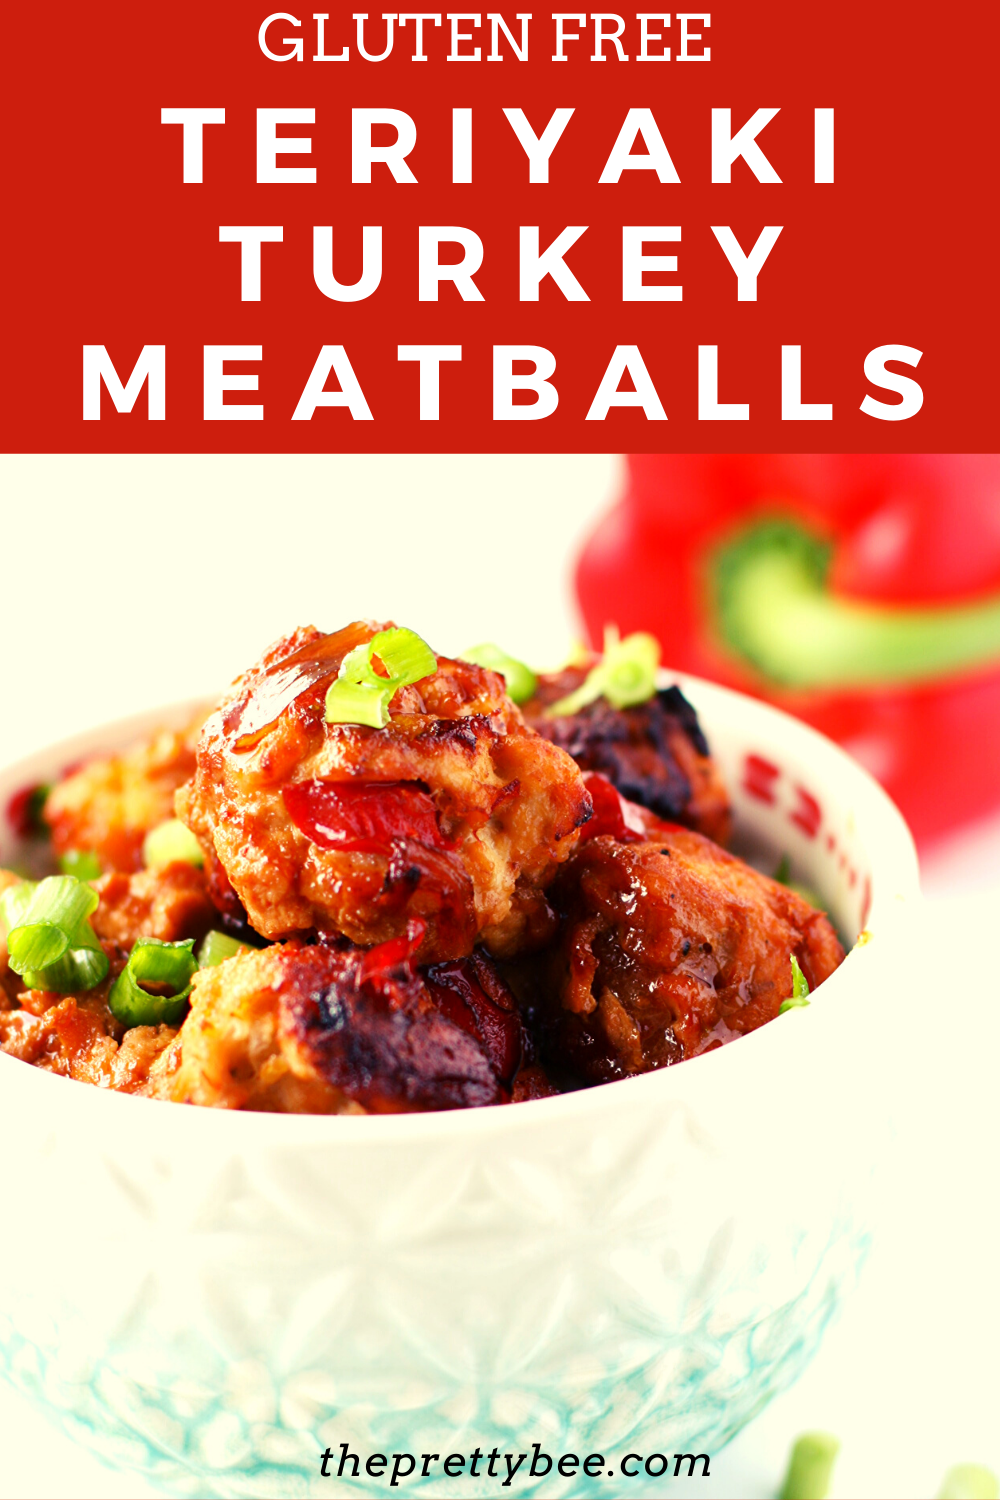 Teriyaki Turkey Meatballs | Recipe in 2020 (With images ...